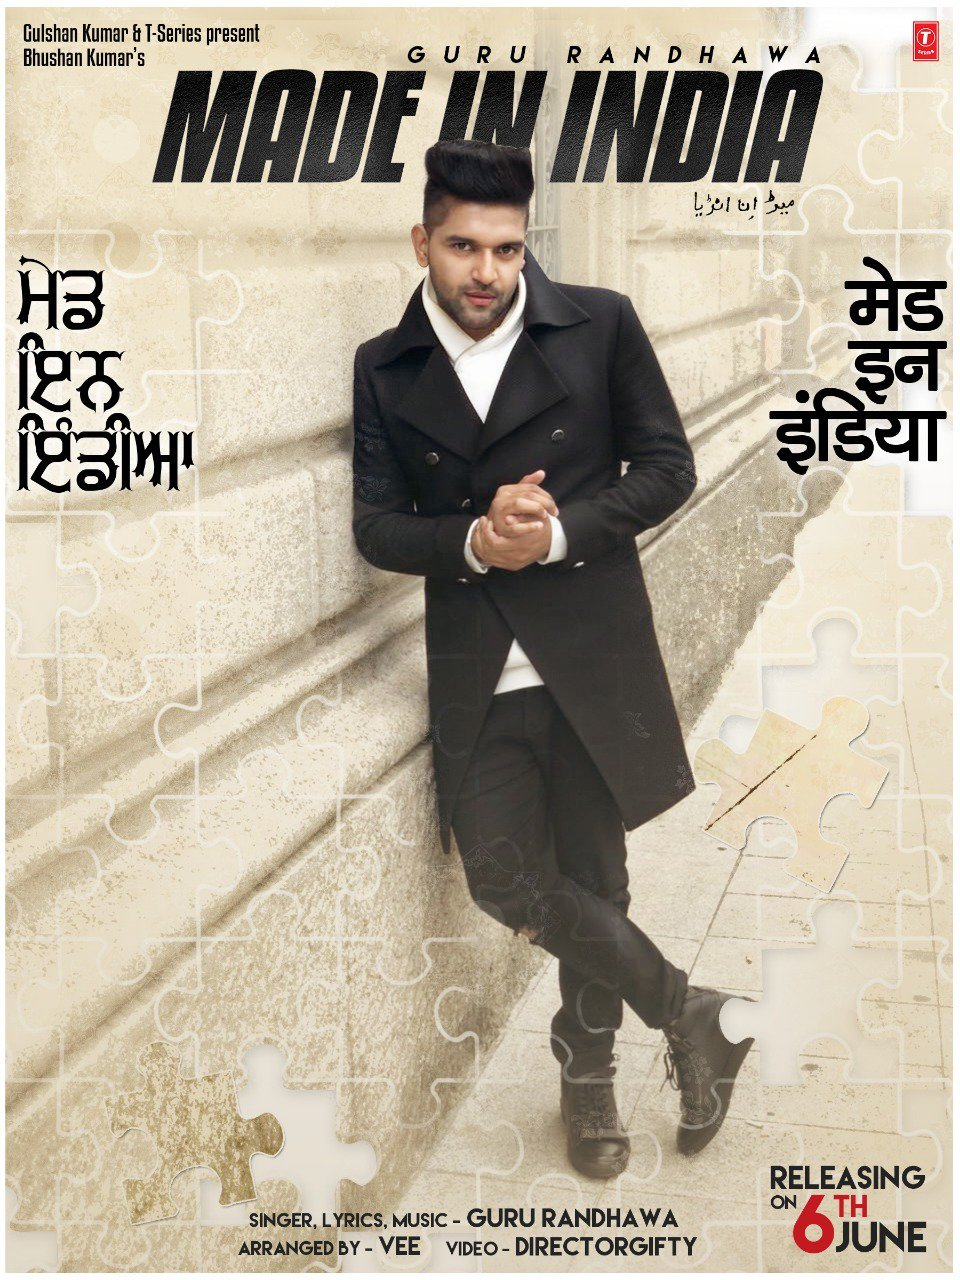 01 made in india new mp3 song 2018 guru randhawa youtube.